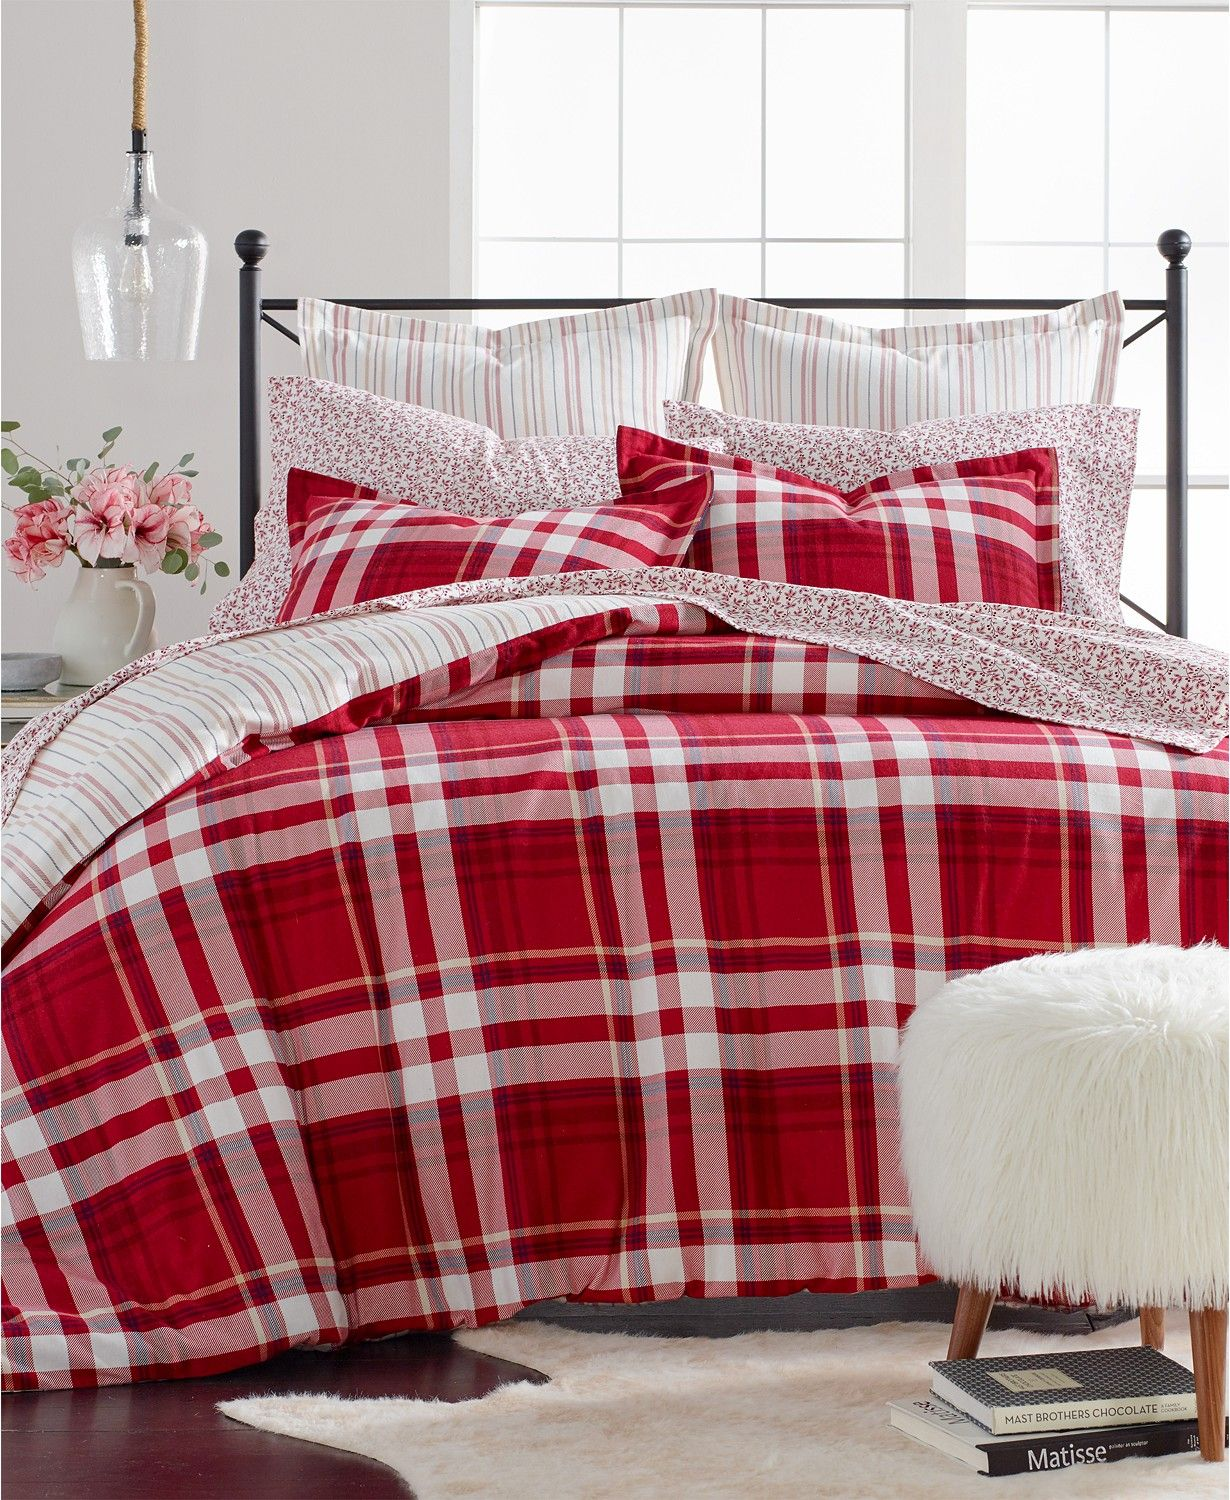 Flannel Bedding Duvet Covers